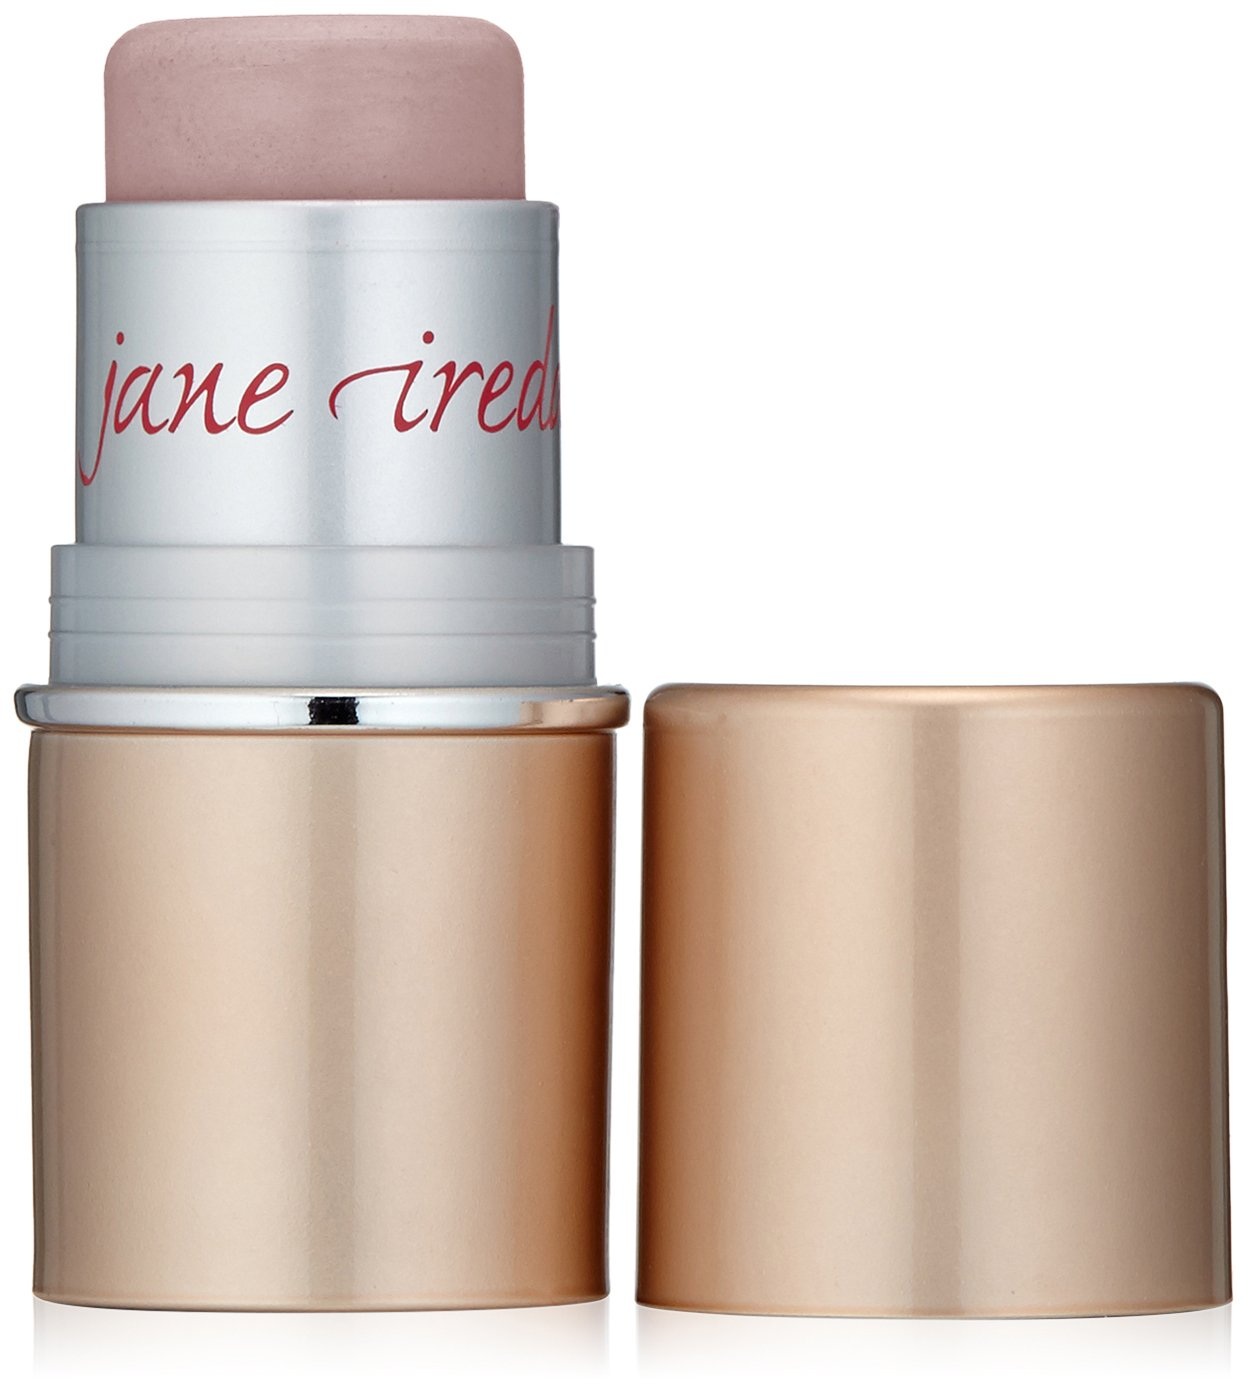 jane iredale In Touch Highlighter, Complete, 0.14 oz. by jane iredale